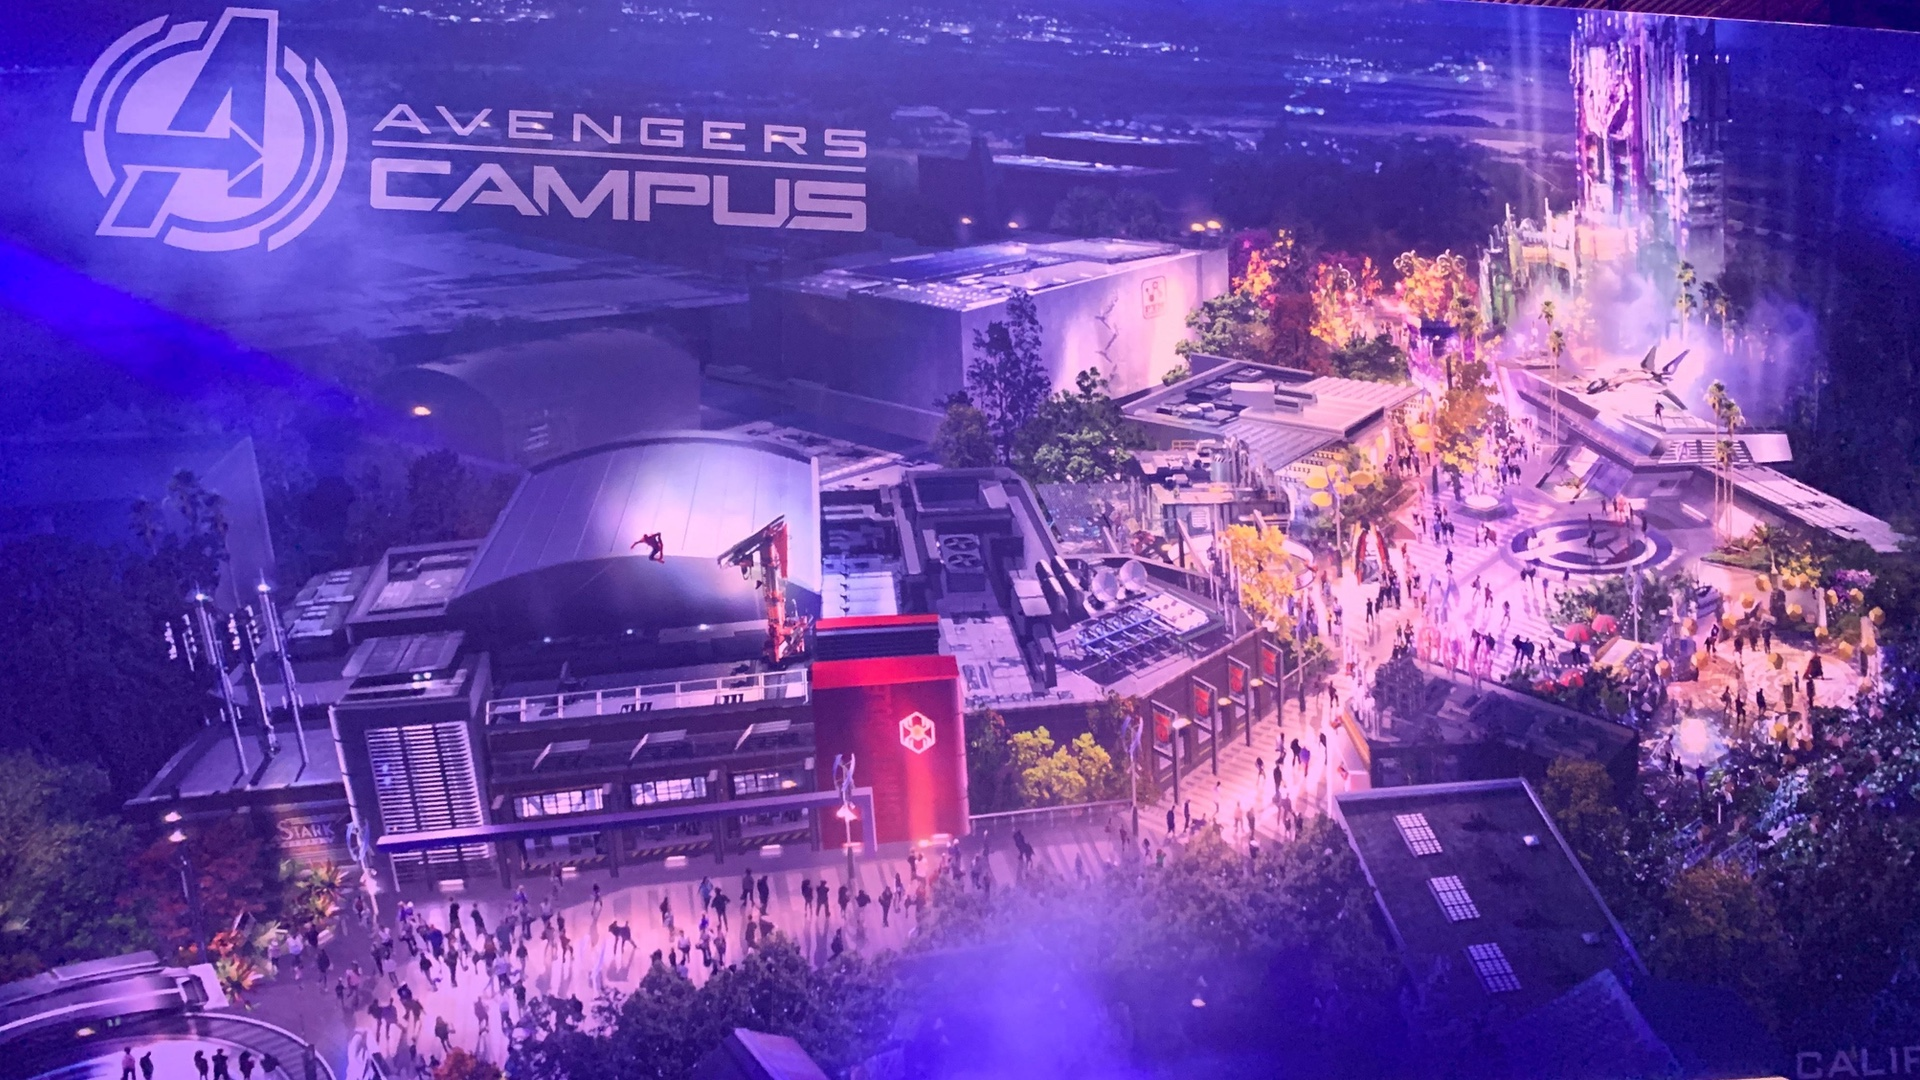 the-marvel-land-coming-to-california-adventure-is-called-avengers-campus-and-heres-some-concept-art-and-details-social.jpg